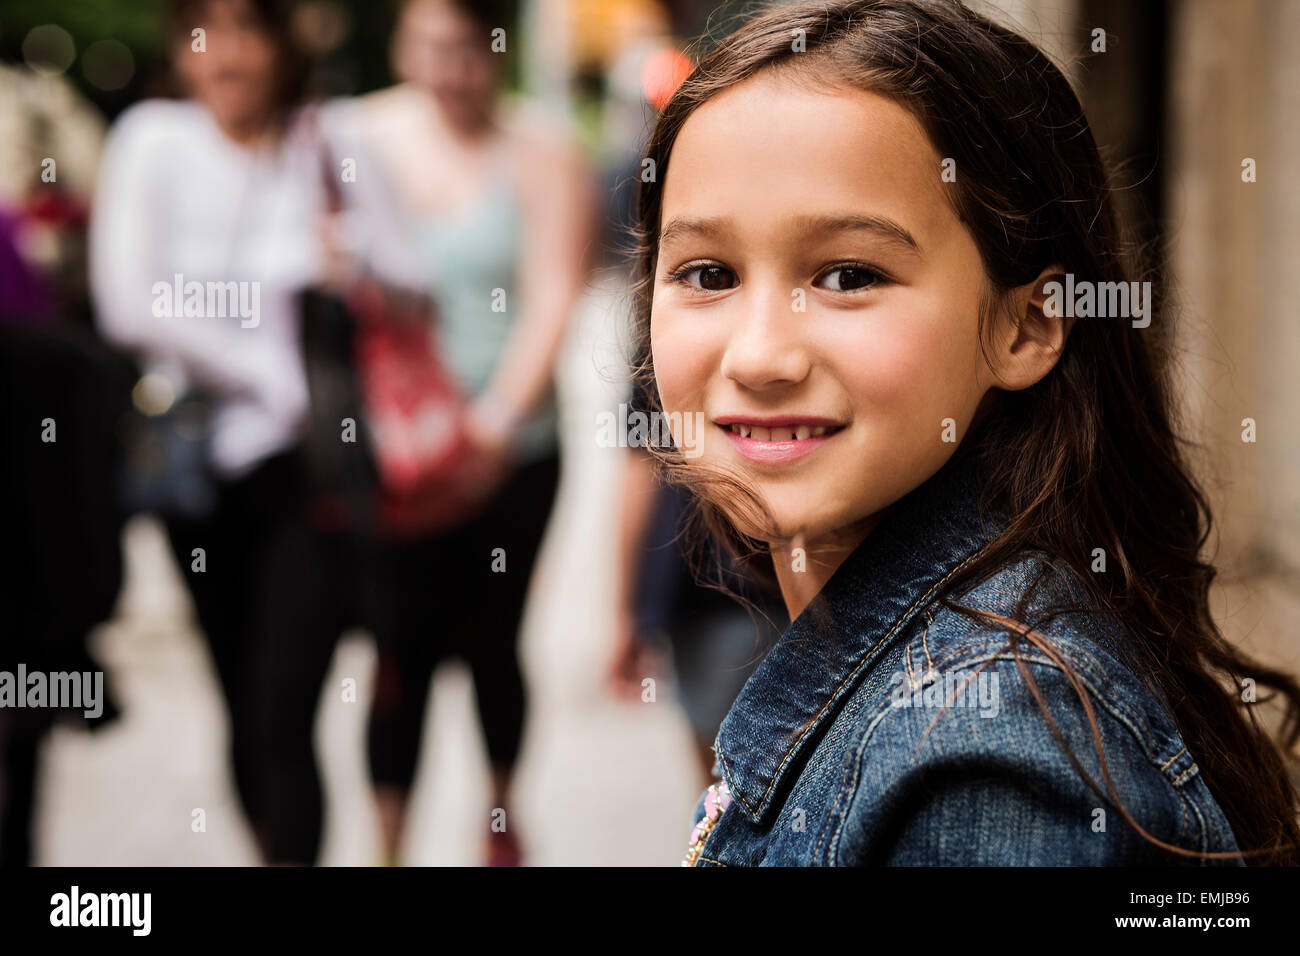 Portrait of Smiling Young Girl, Close-Up - Stock Image